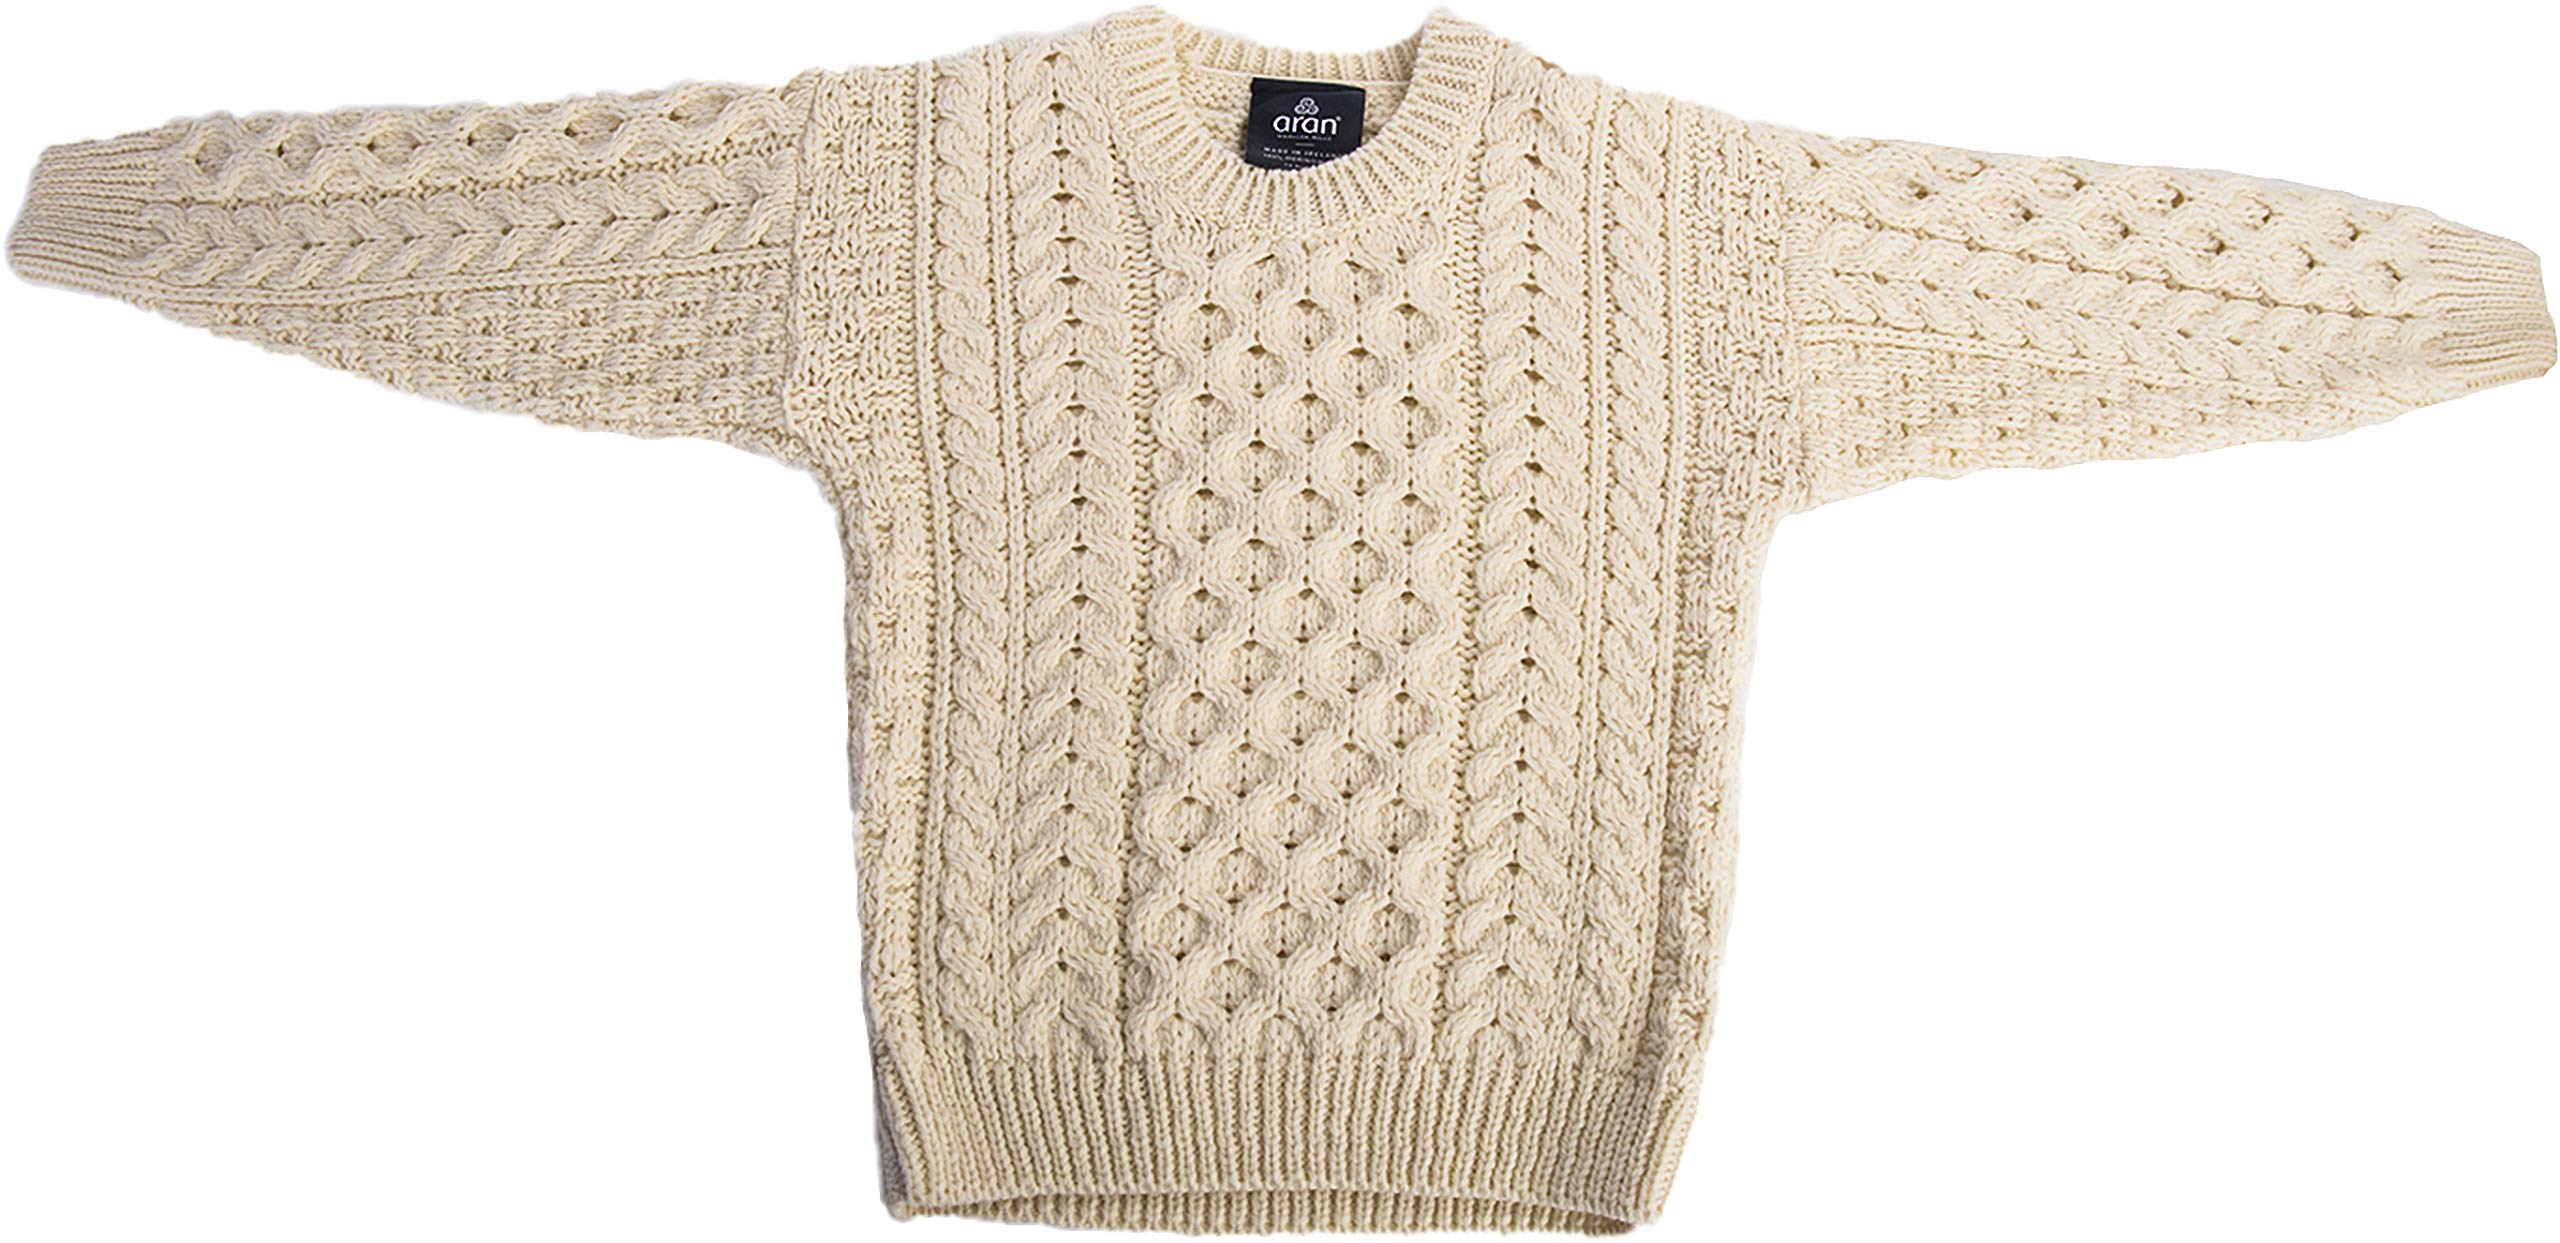 Carraig Donn Childs Irish Merino Wool Crew Cut Sweater (XSmall, Natural)